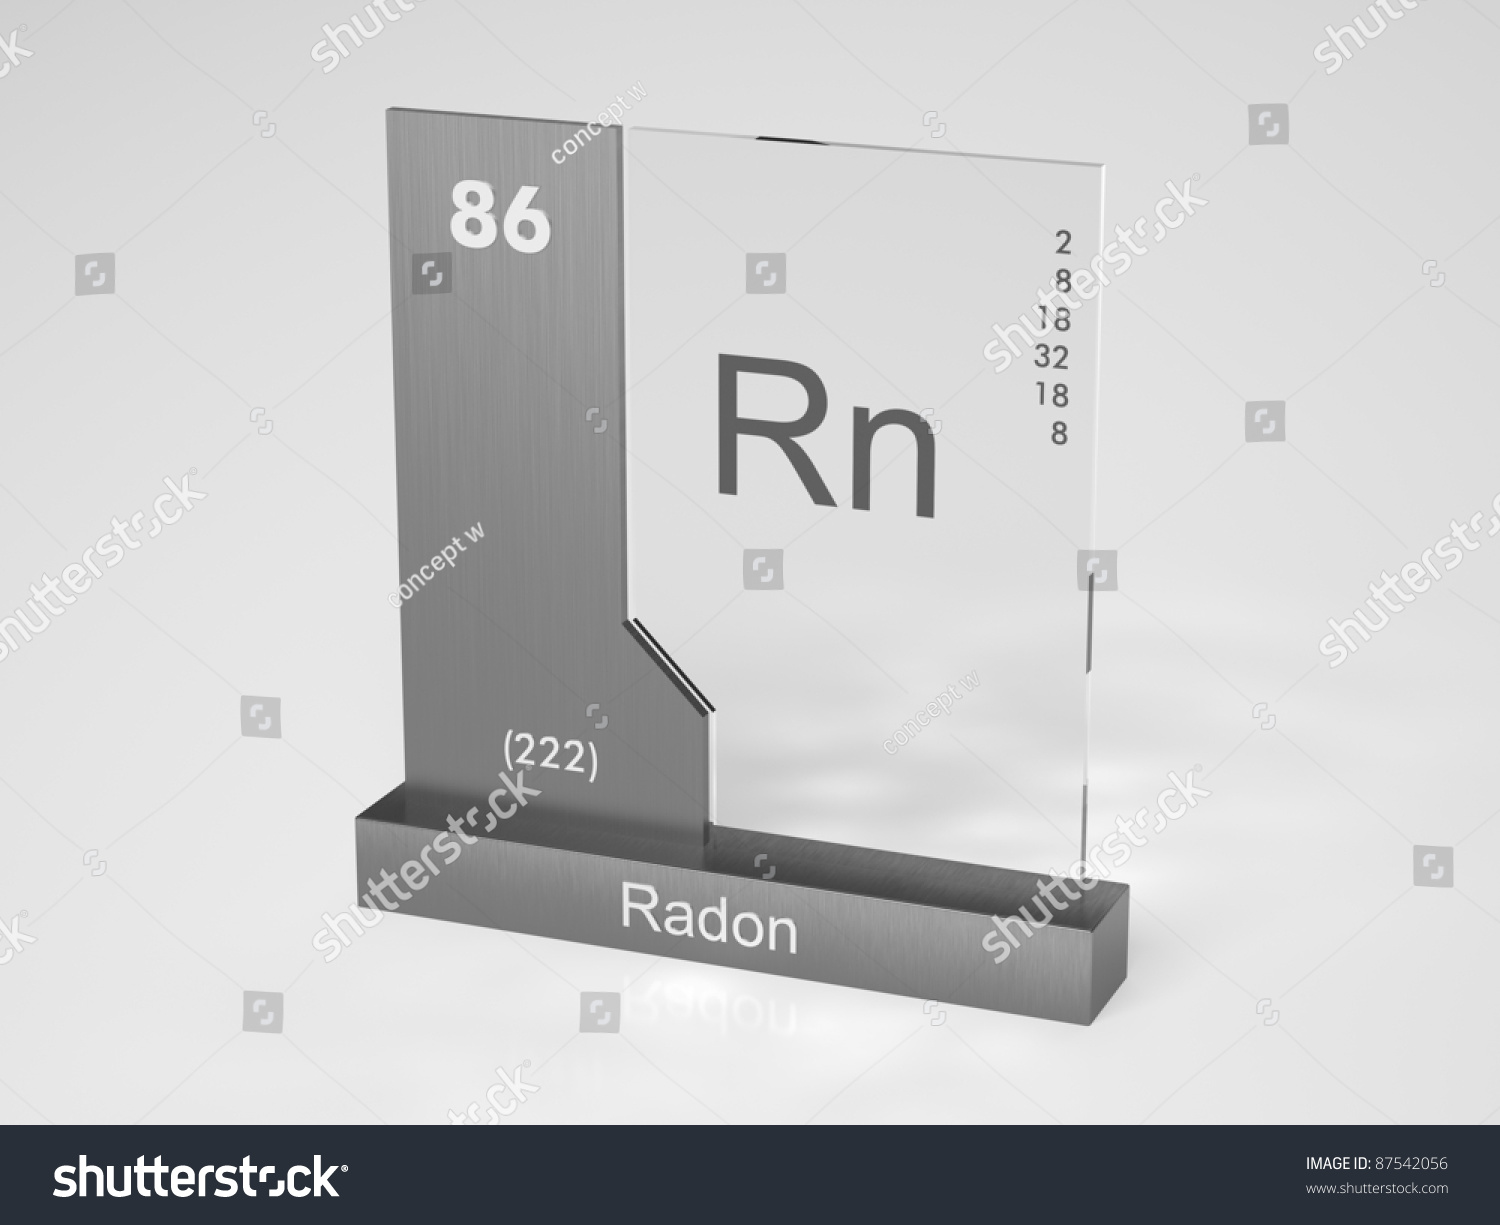 What is rn on the periodic table images periodic table images radon symbol rn chemical element periodic stock illustration radon symbol rn chemical element of the periodic gamestrikefo Images